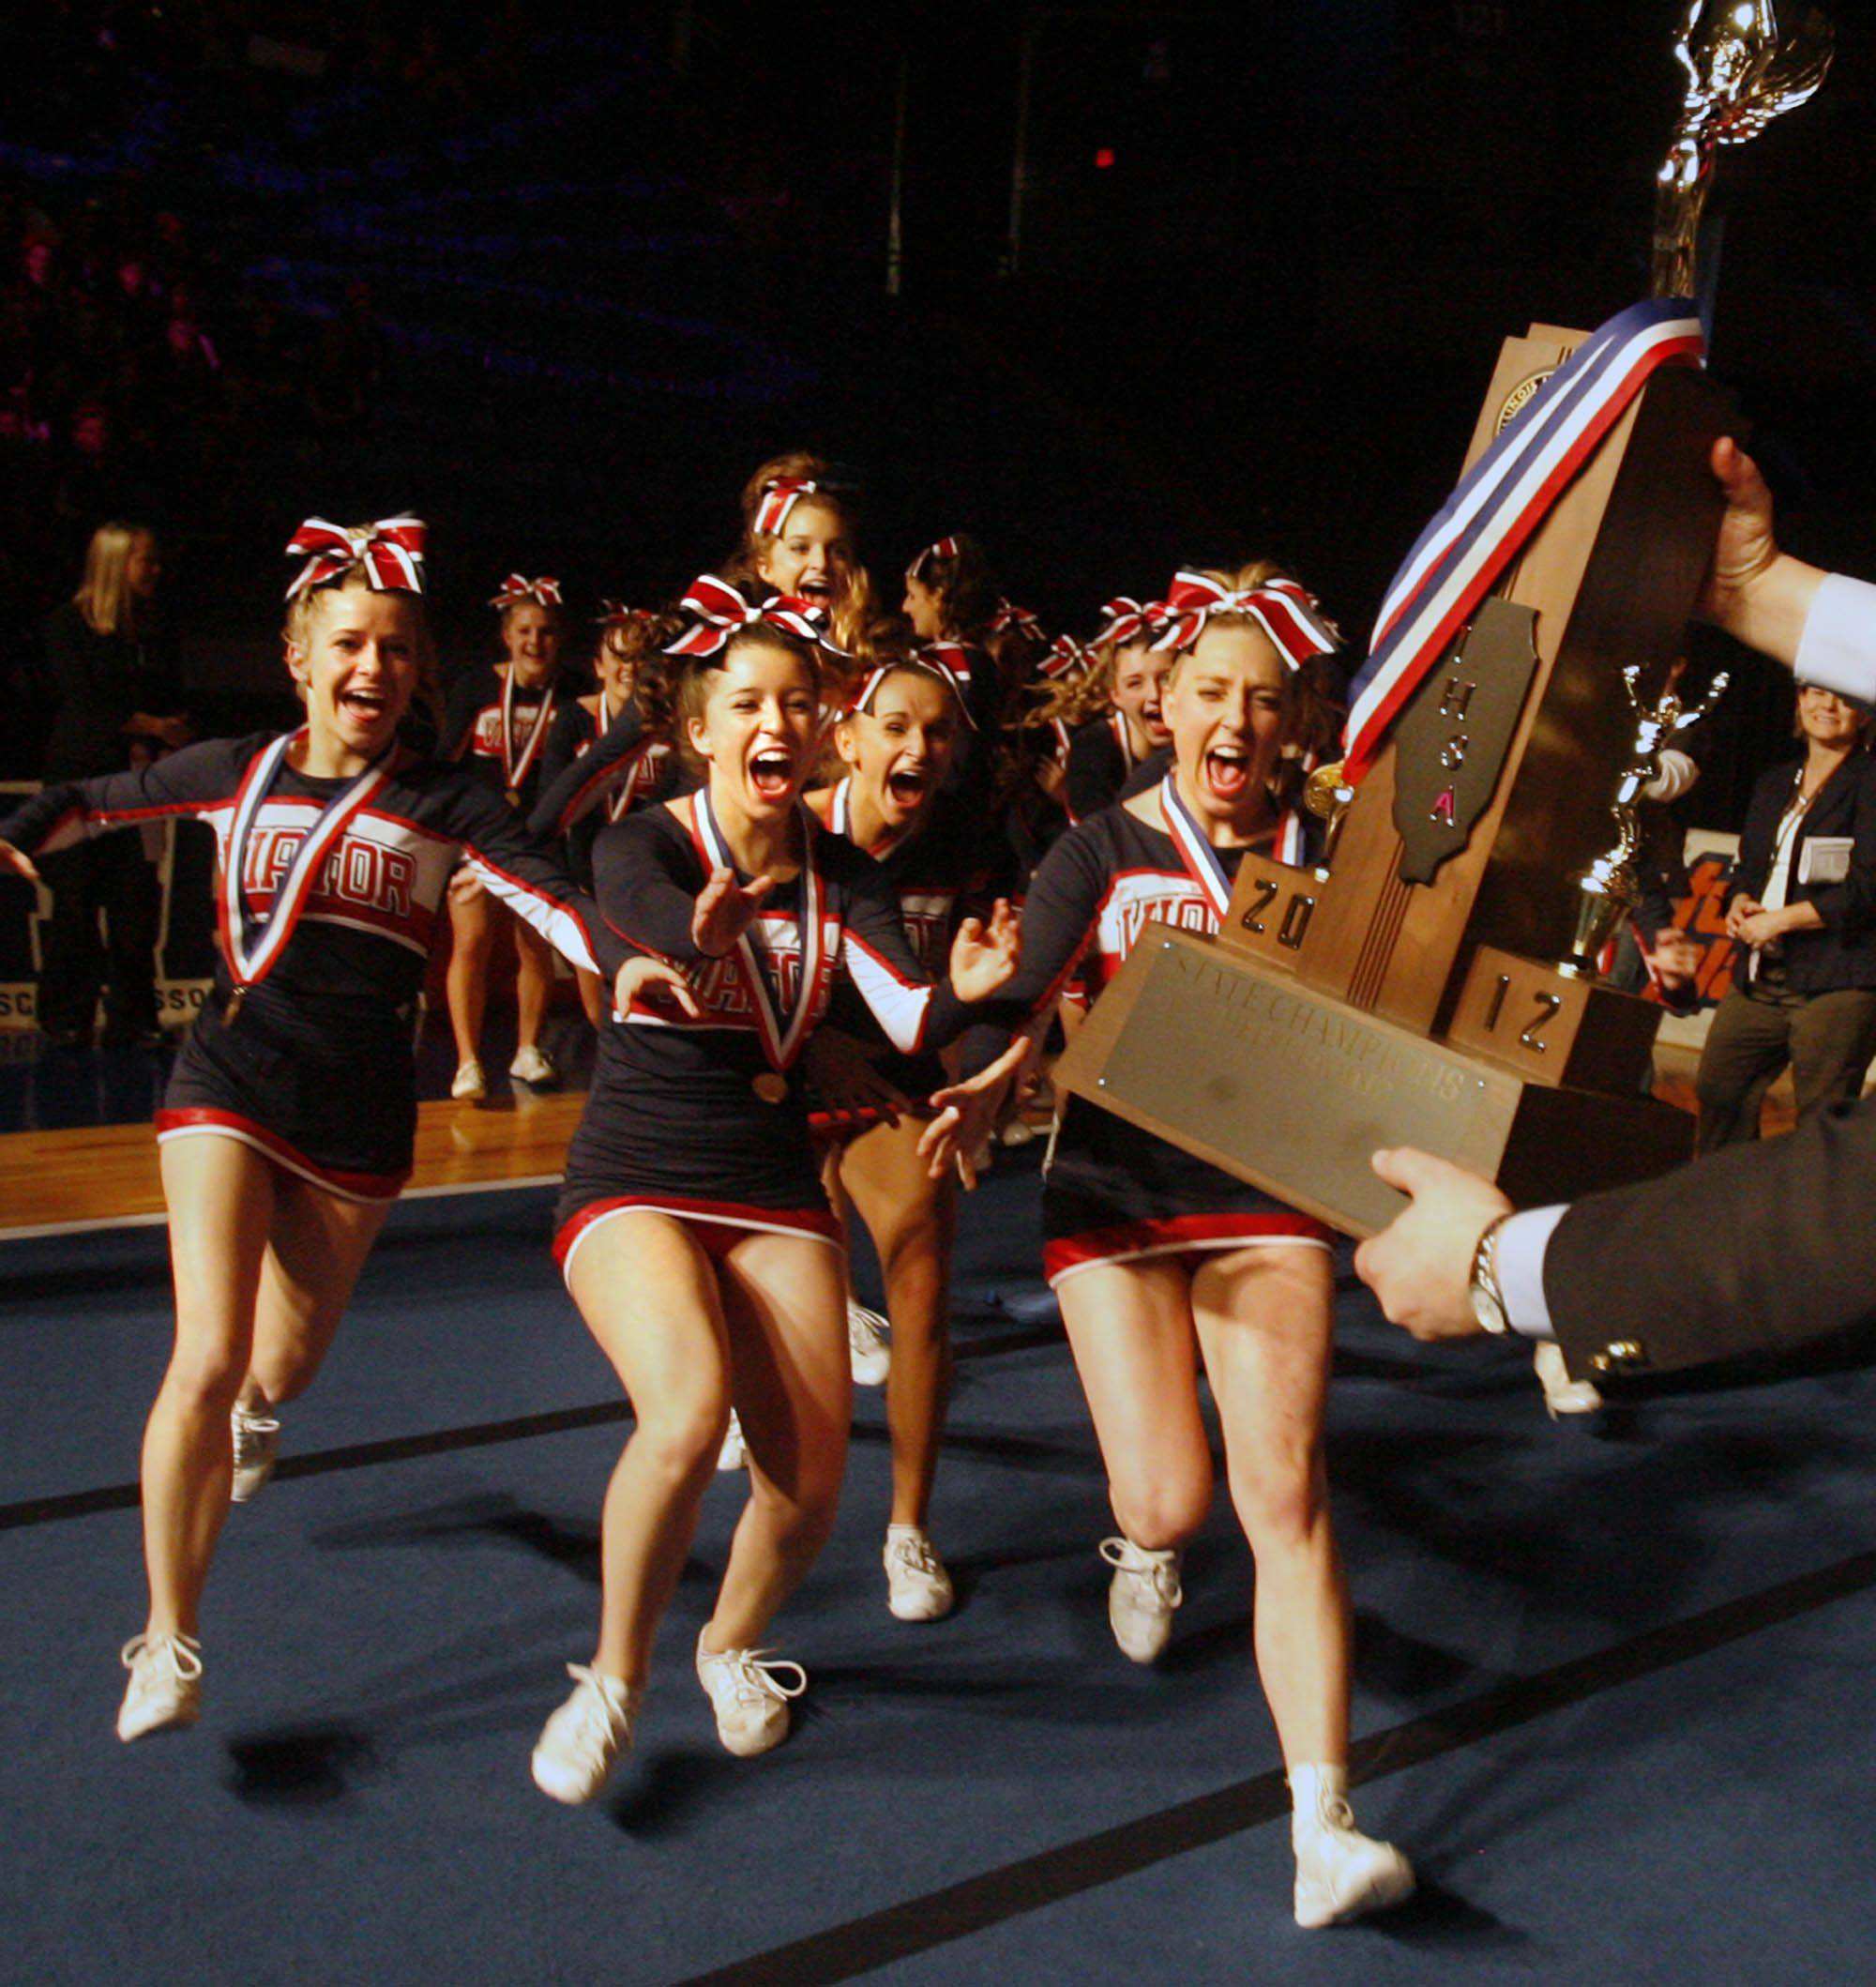 St. Viator High School cheerleading team raises to accept the first place trophy for the medium school category at IHSA cheerleading state finals at U.S. Cellular Coliseum in Bloomington on Saturday.